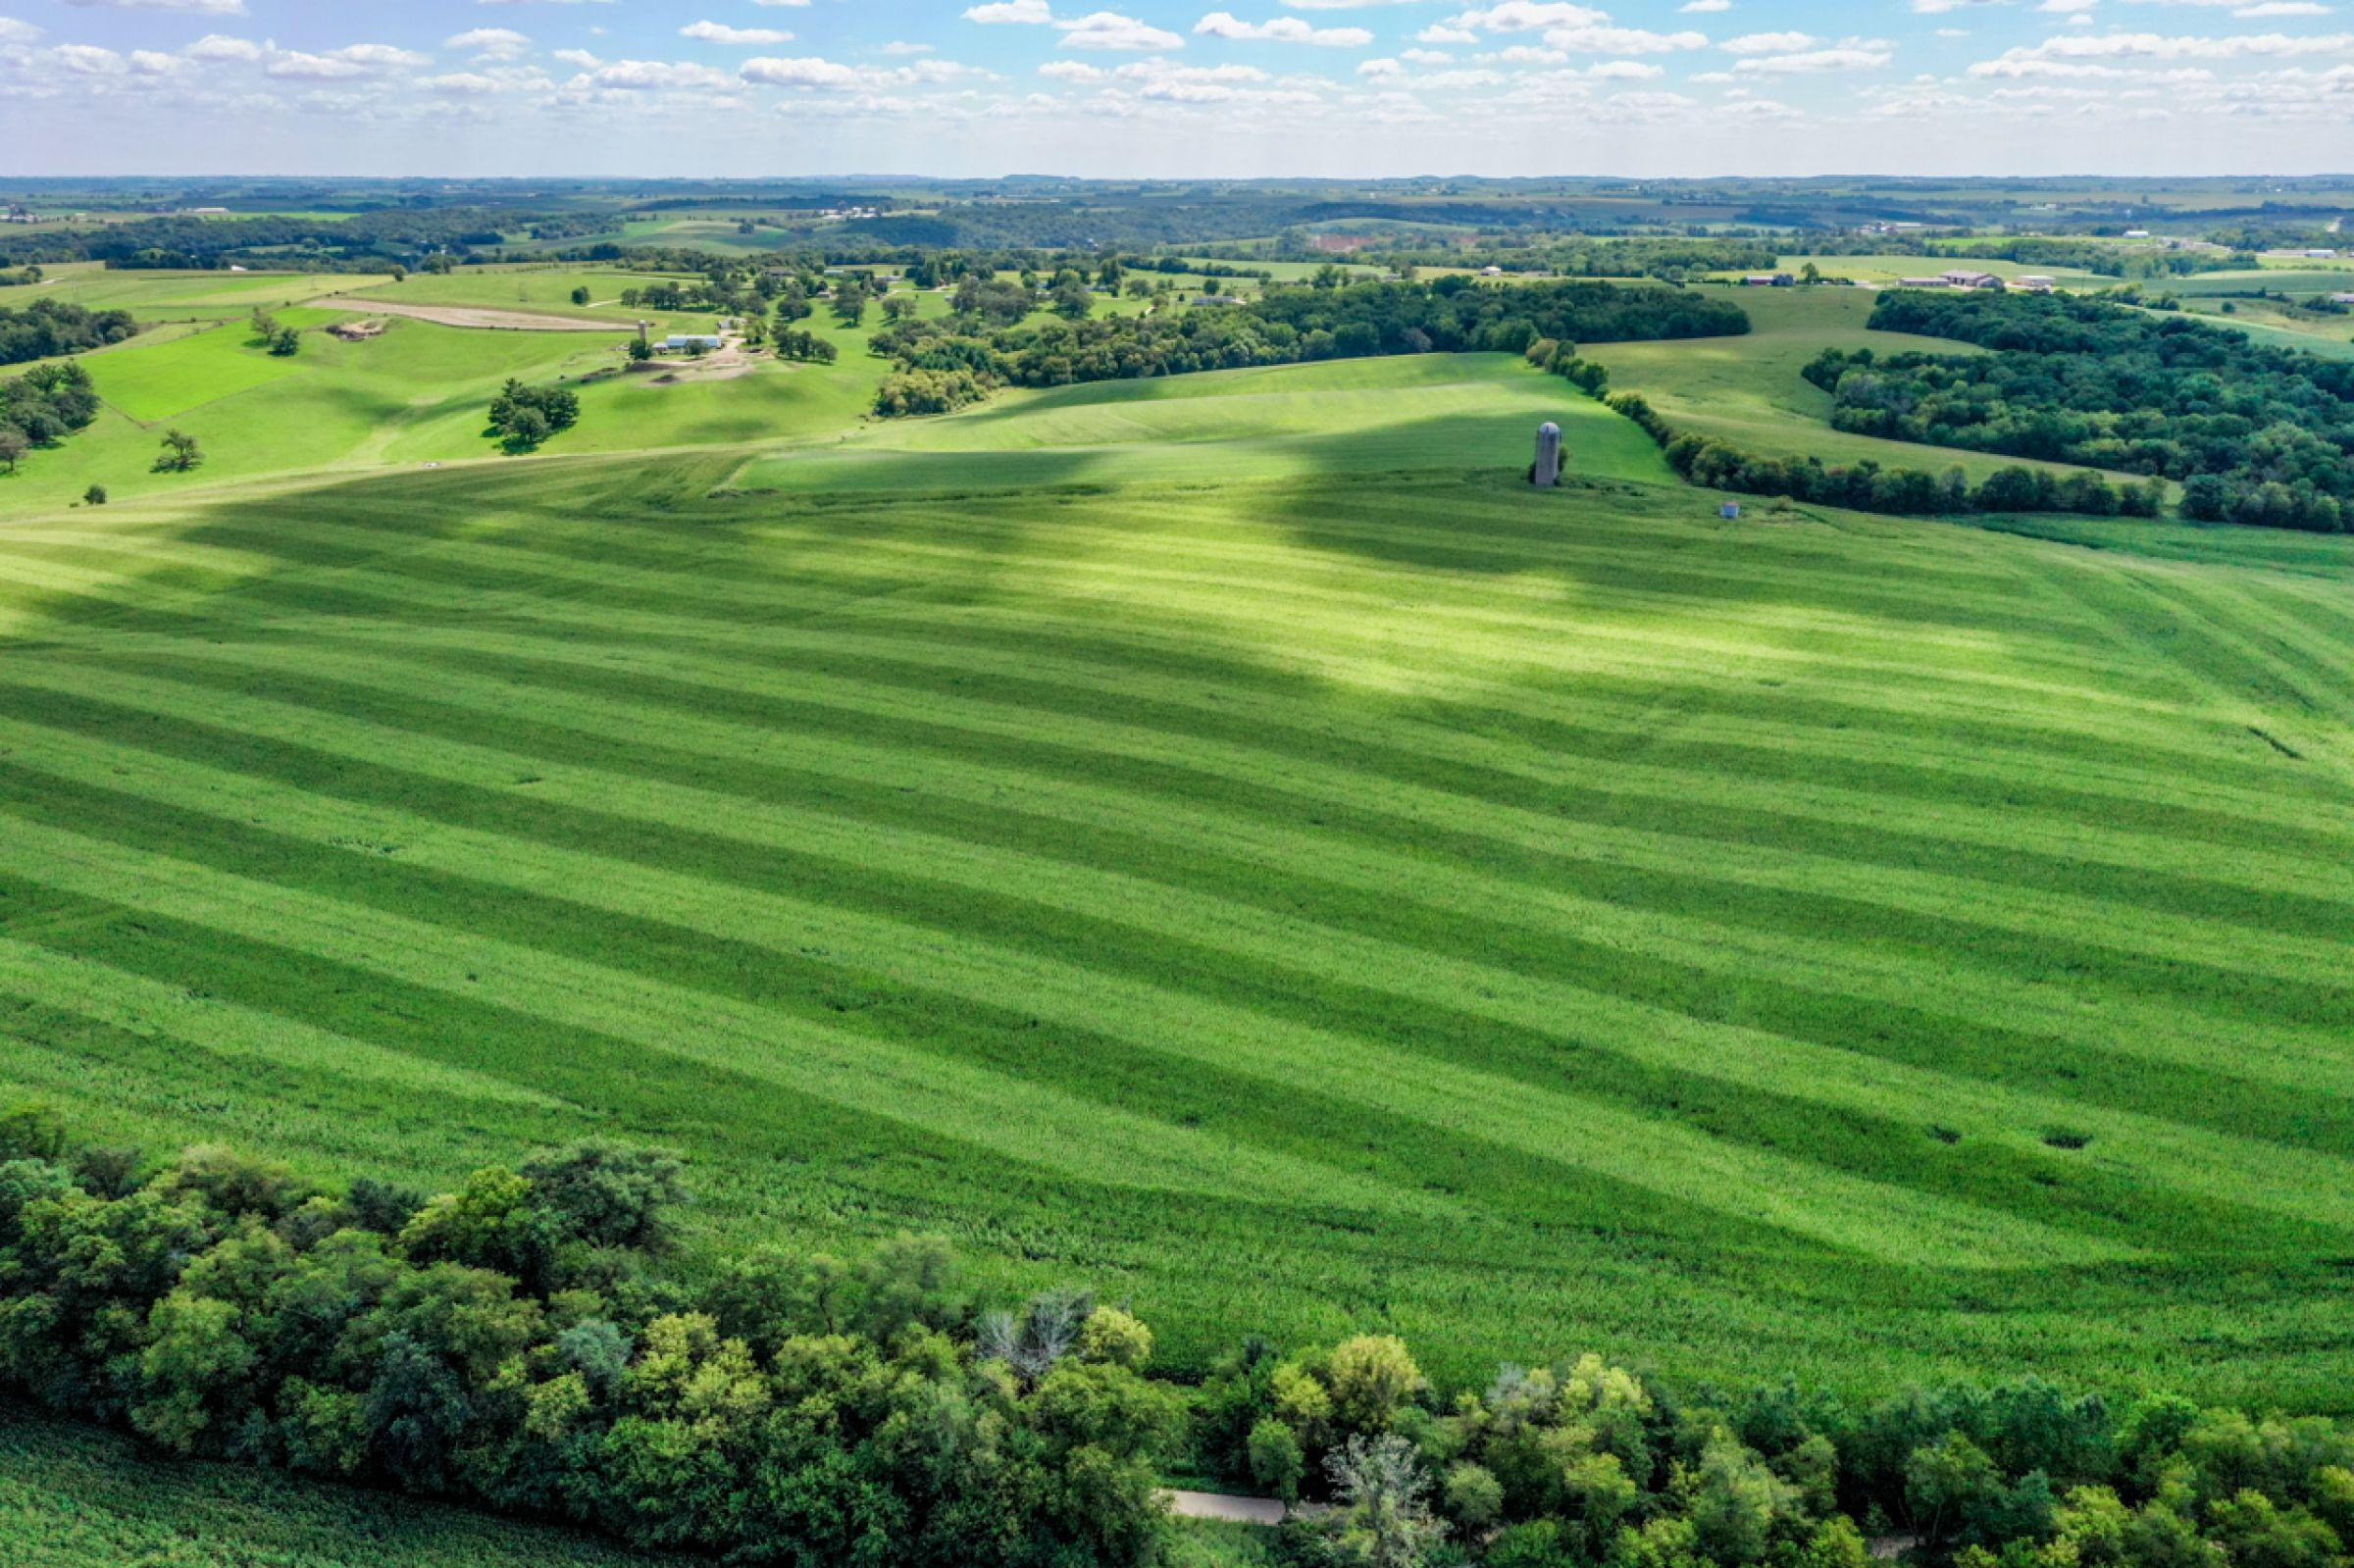 land-lafayette-county-wisconsin-120-acres-listing-number-15729-5-2021-09-03-204841.jpg